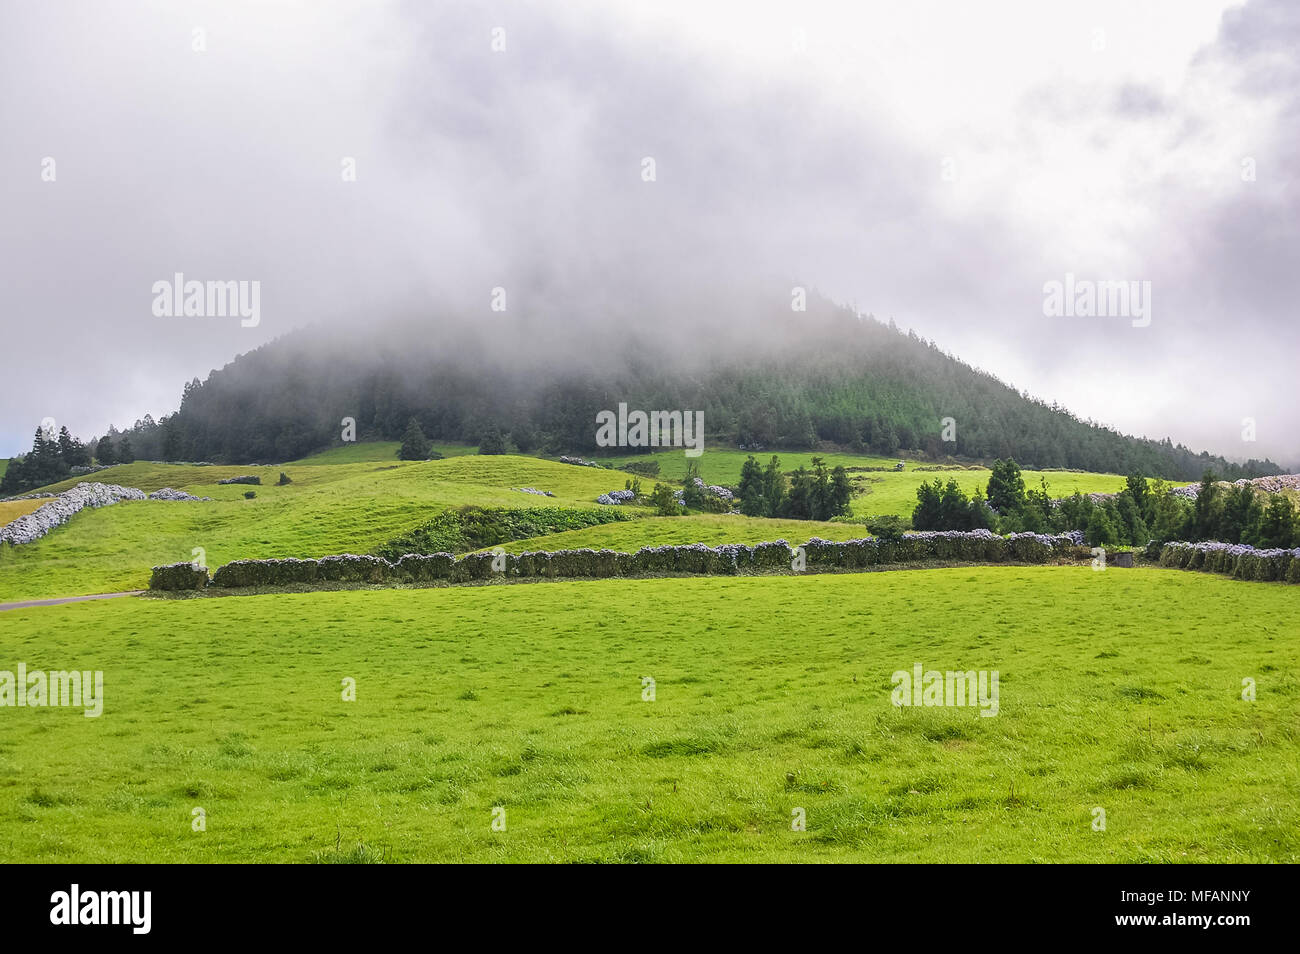 View on landscape at Azores Islands - PortugalStock Photo